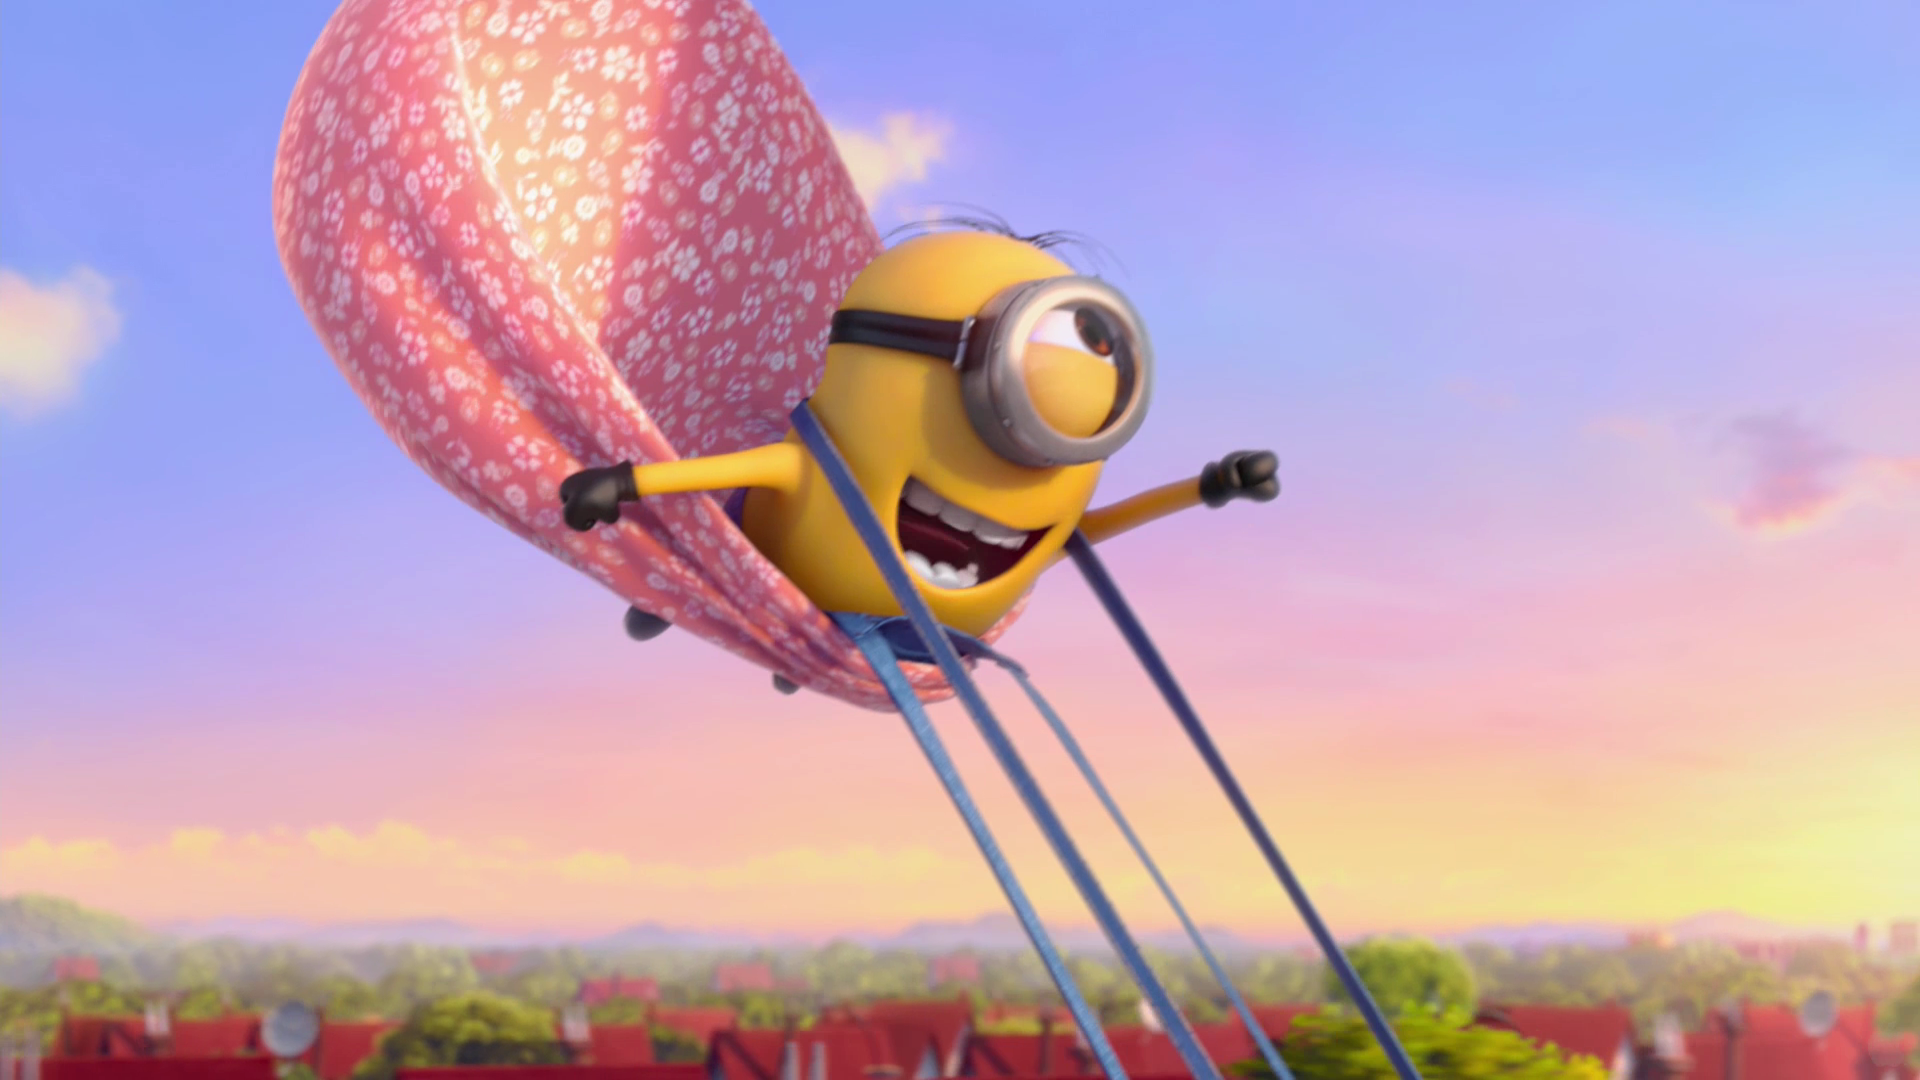 Pictures of Despicable Me HD, 1920x1080 px, 07.31.13